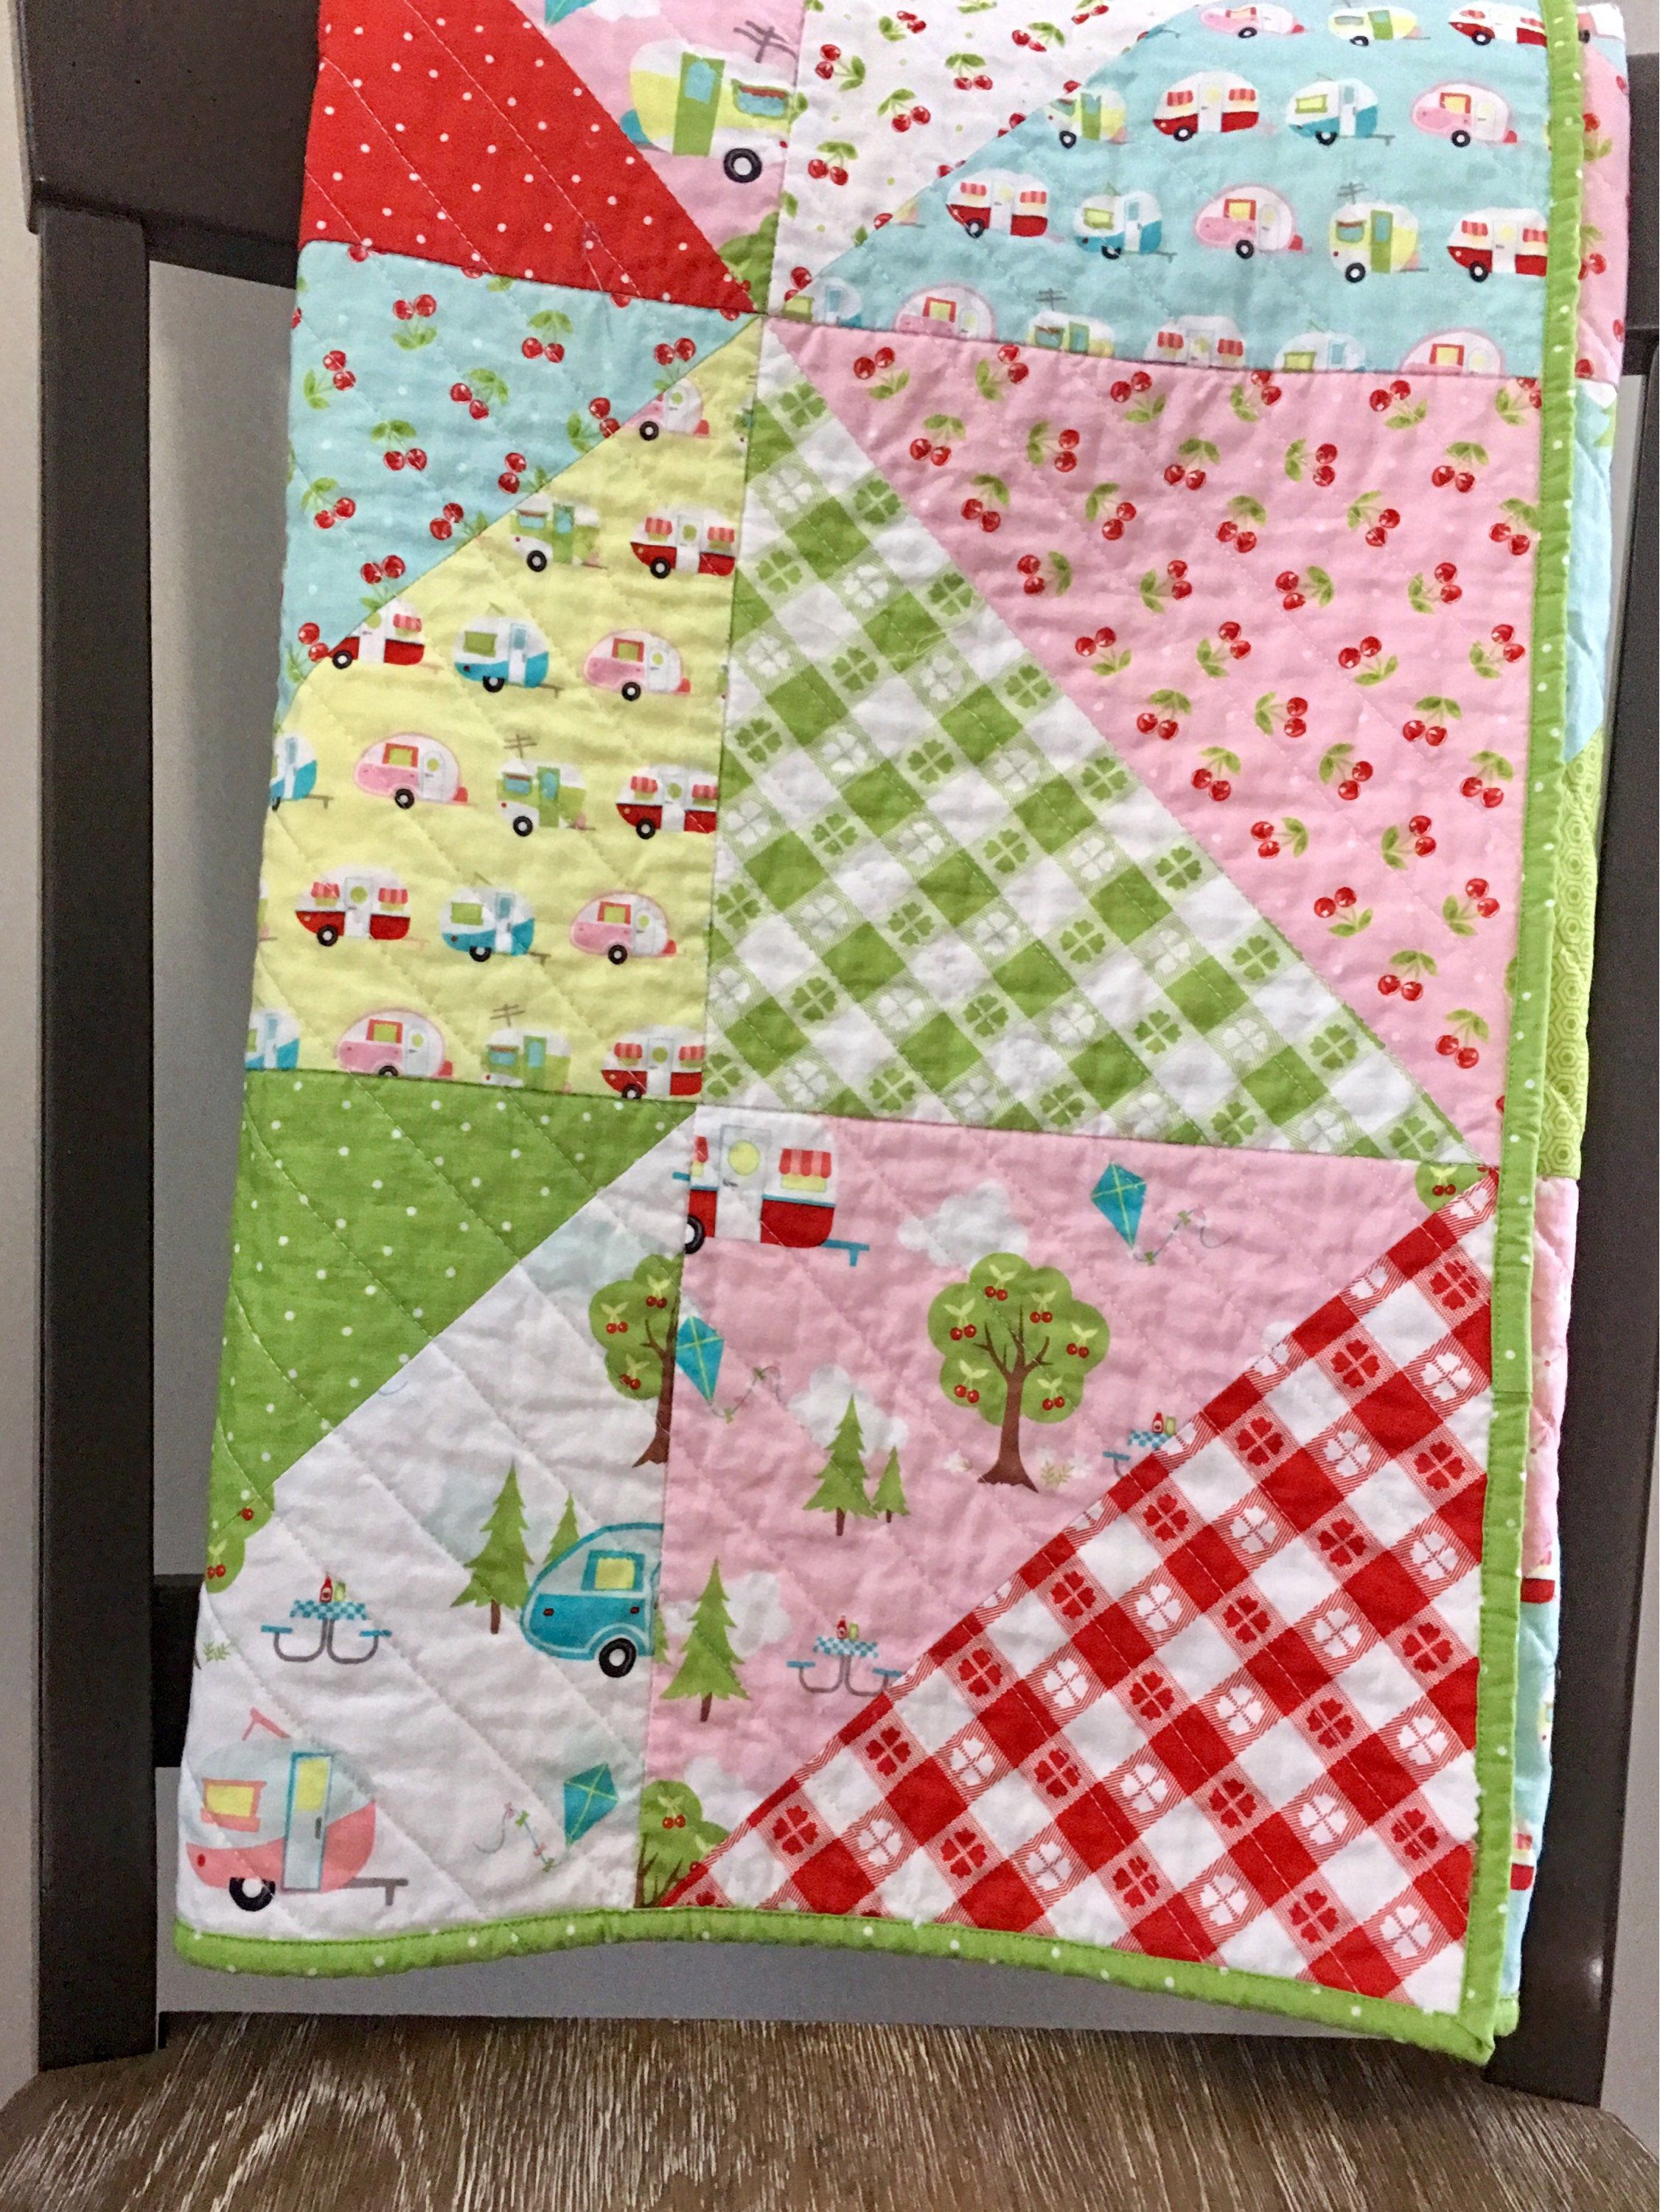 Design Your Own Handmade Baby Quilt with Custom Color and Theme